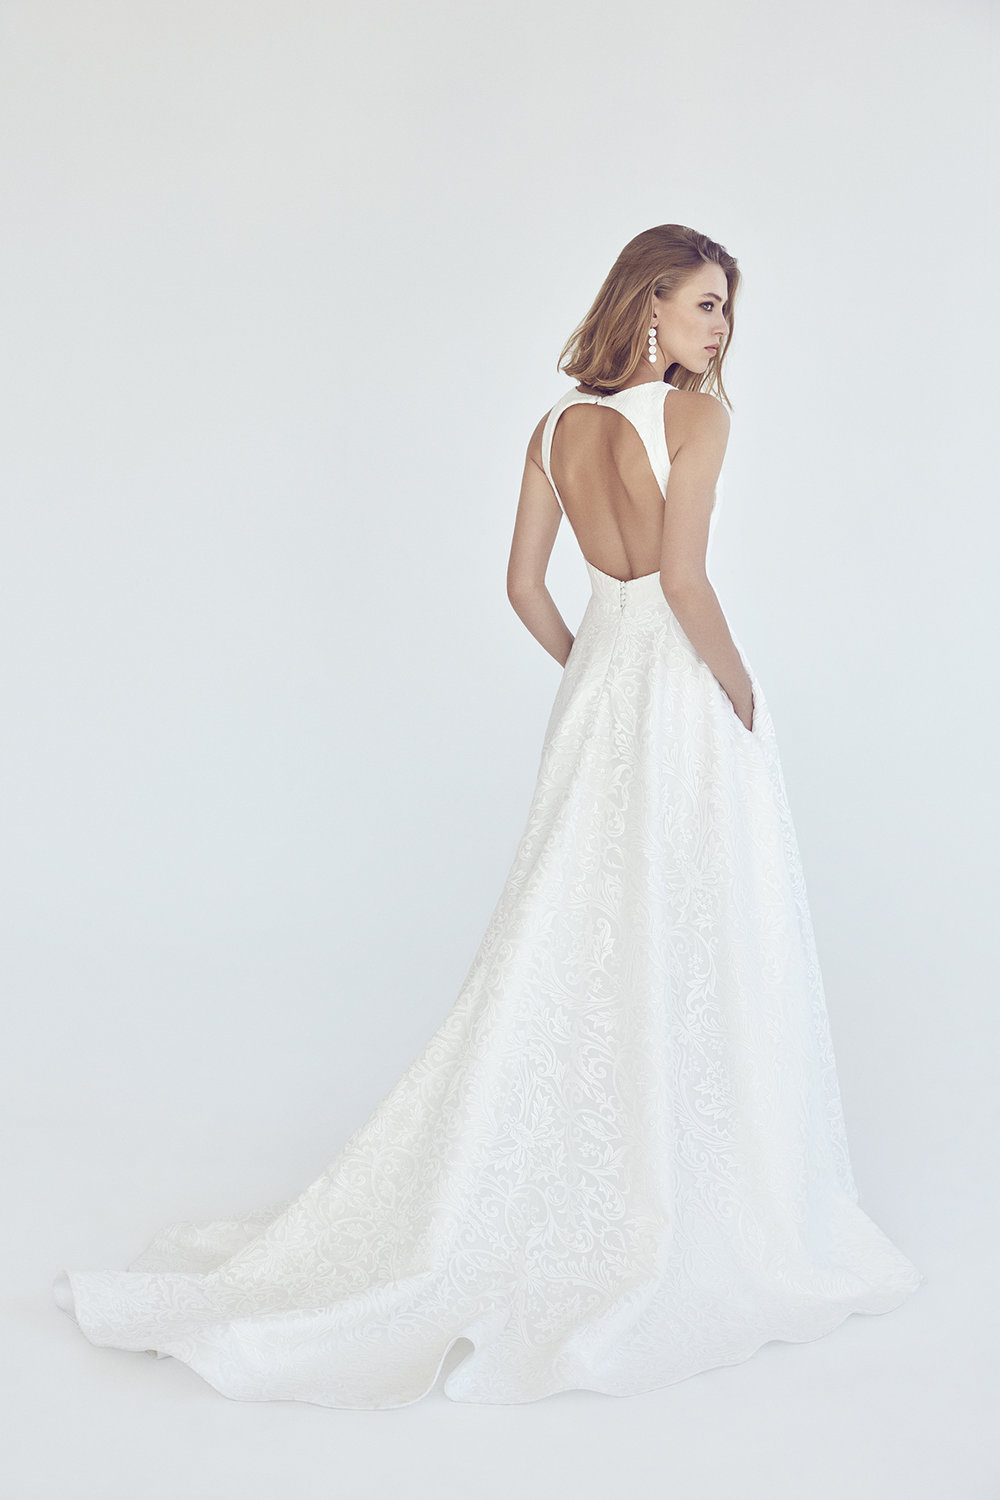 Neptune Gown by Suzanne Harward | LOVE FIND CO.